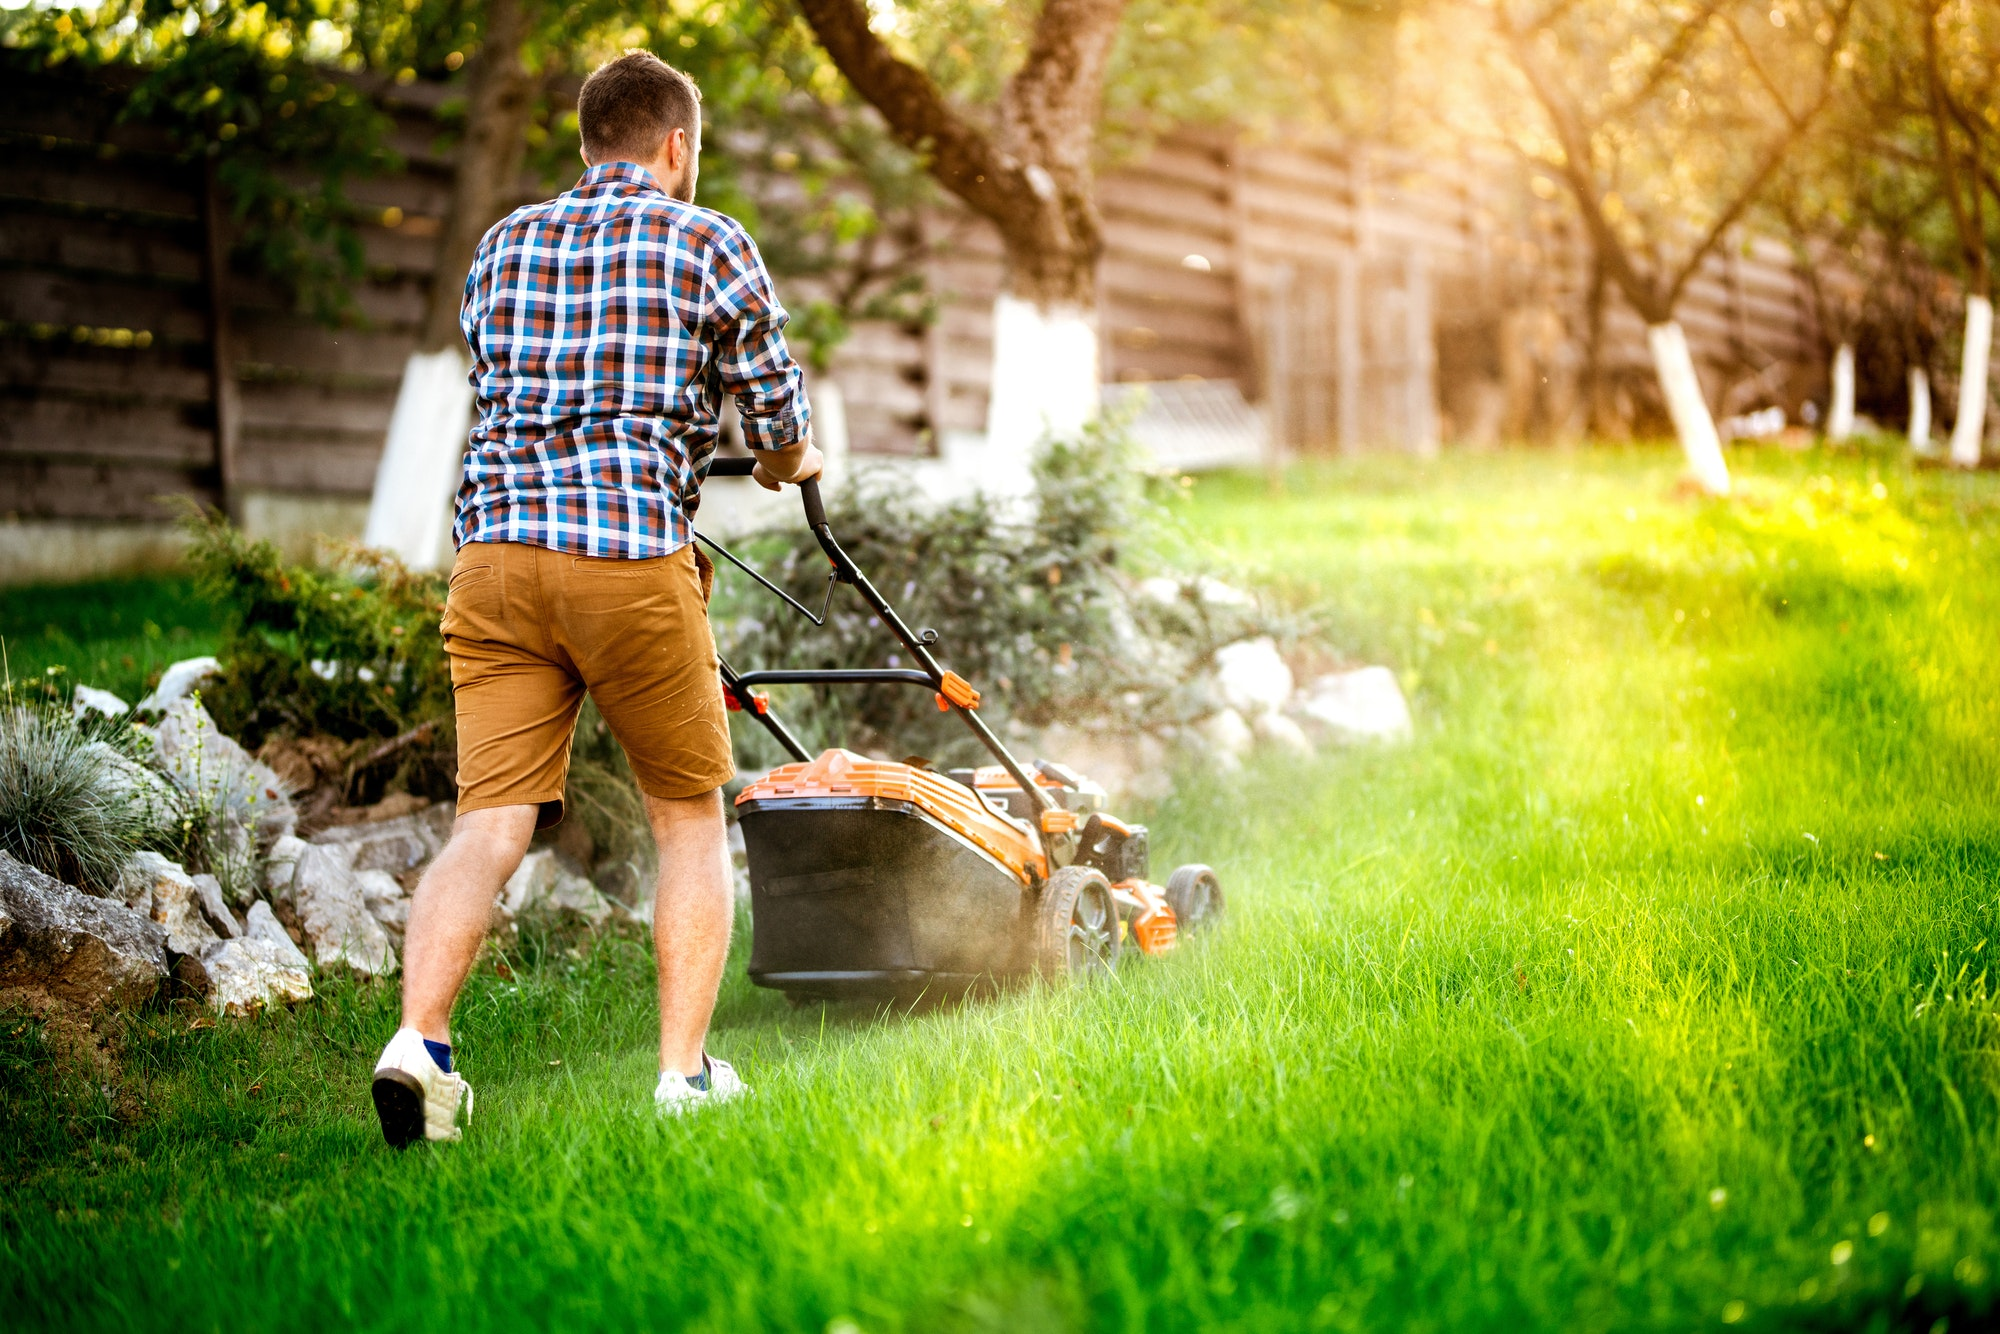 Gardener mowing the lawn using a gasoline powered device, a professional lawn mower